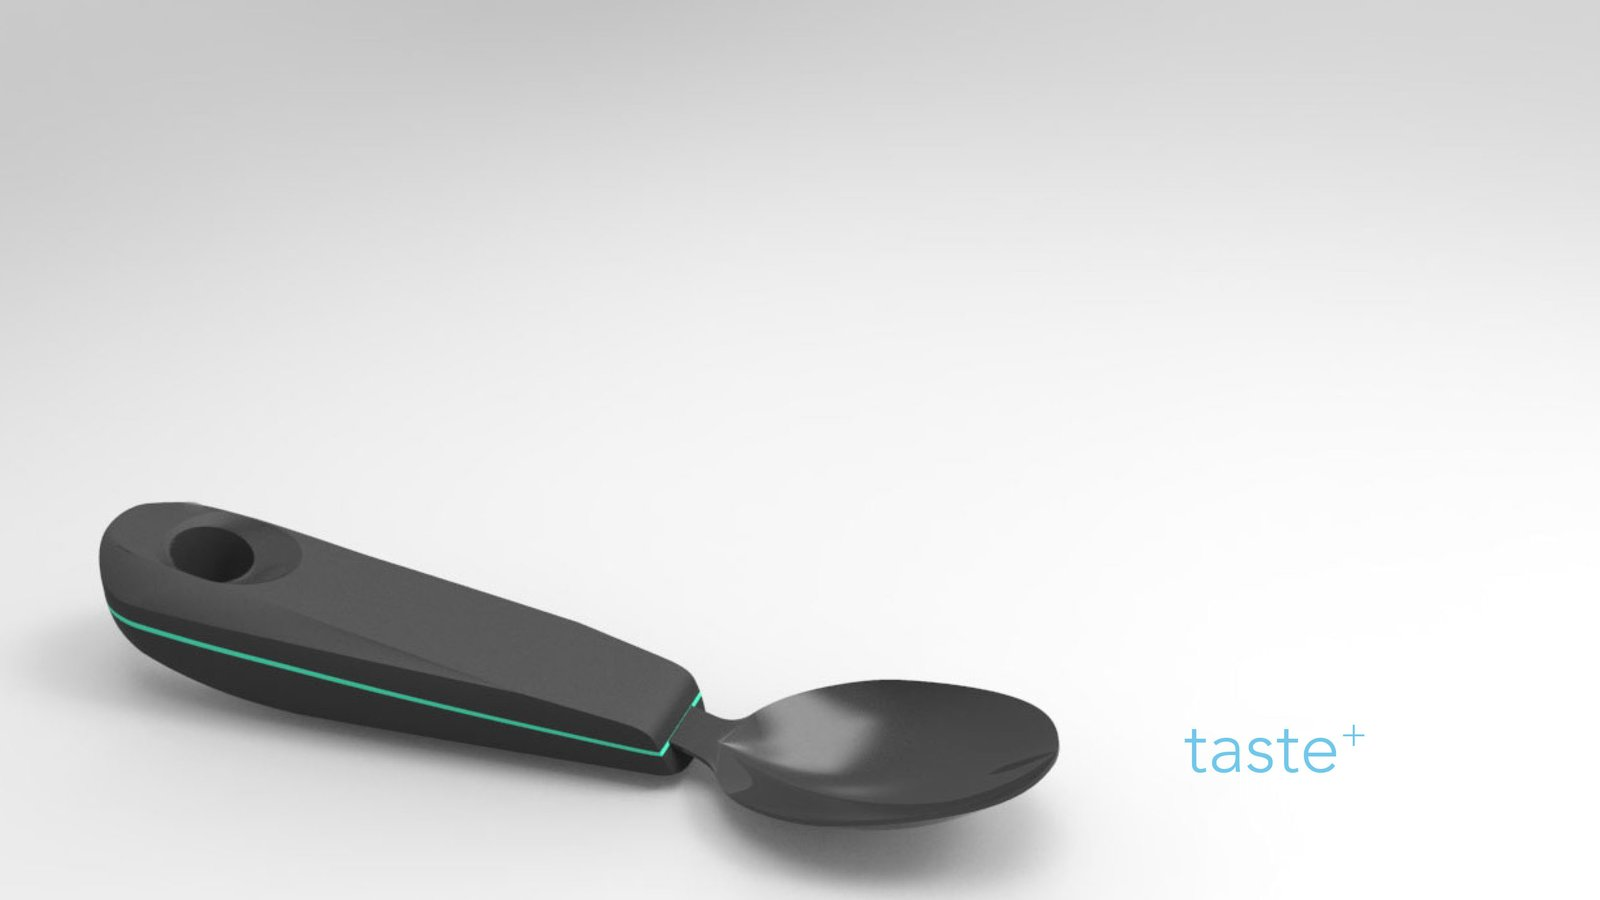 """The """"Taste+"""" spoon, designed by the Keio-NUS CUTE Center at the National University of Singapore, electrically stimulates taste buds to improve eating for individuals with diminished taste sensation.  Photo 3 of 5 in Designs for patients with dementia"""